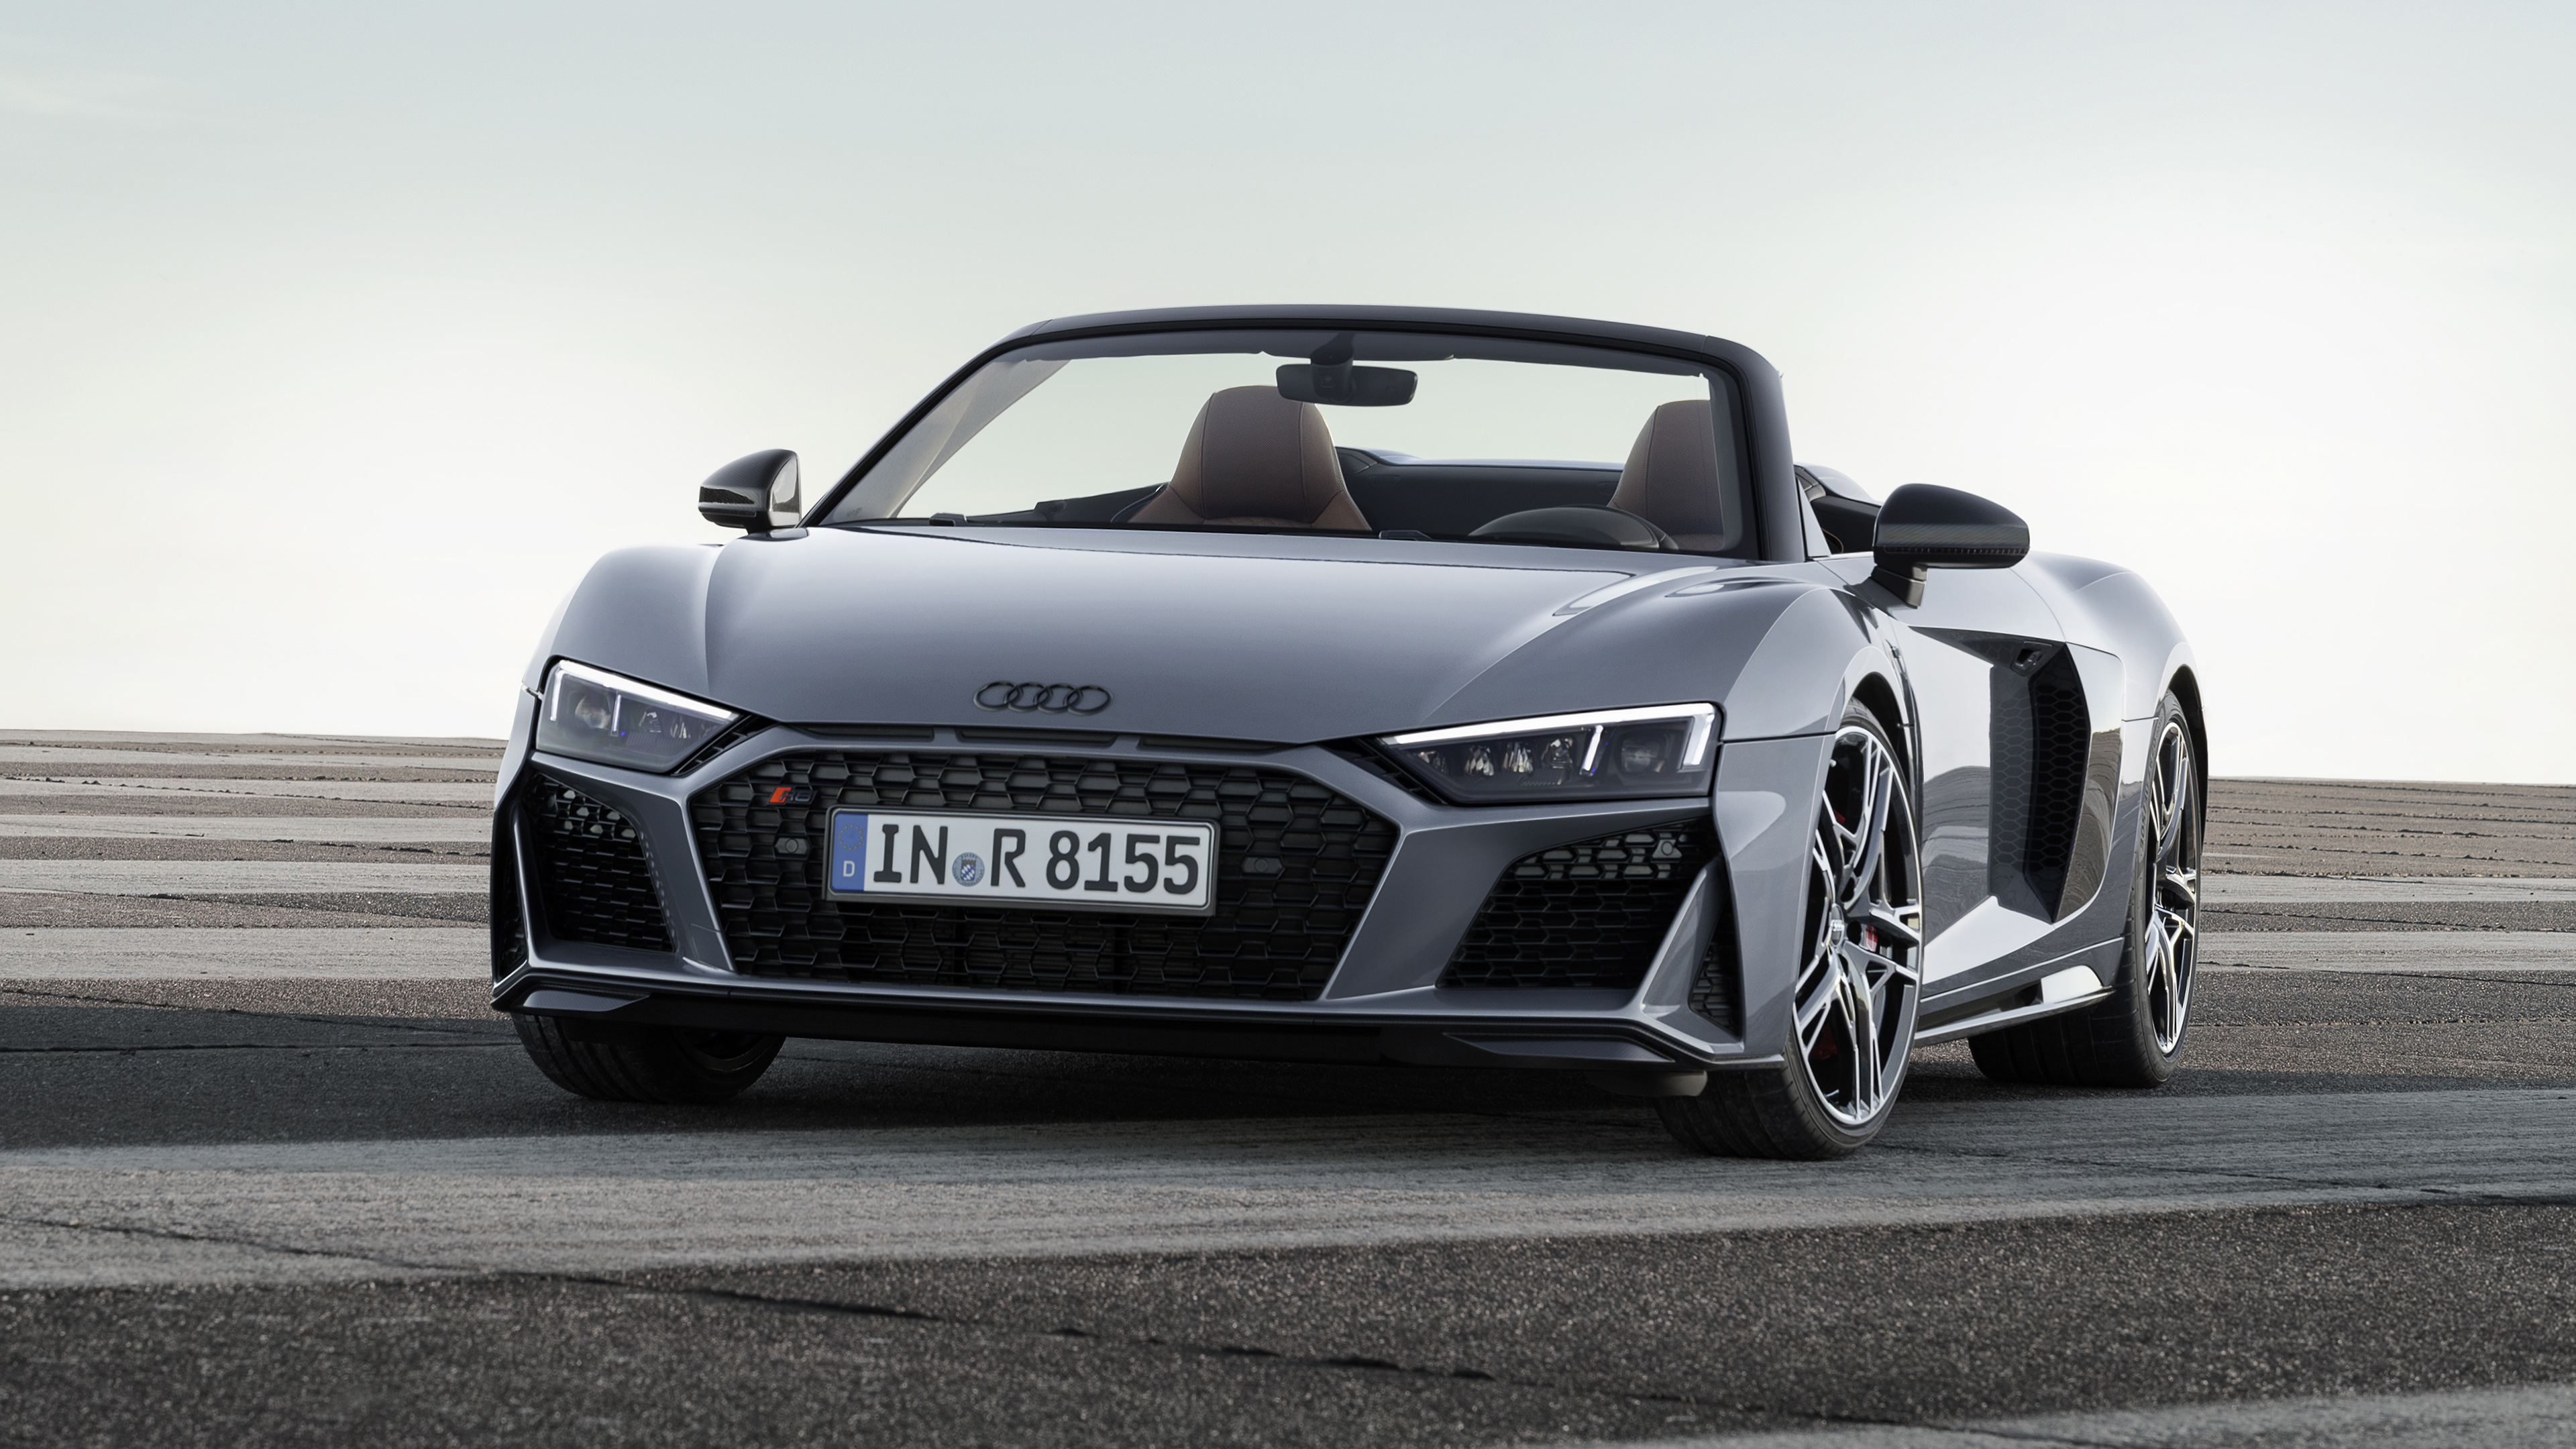 Audi R8 Spyder V10 2019 4K Wallpaper HD Car Wallpapers ID 11379 3840x2160